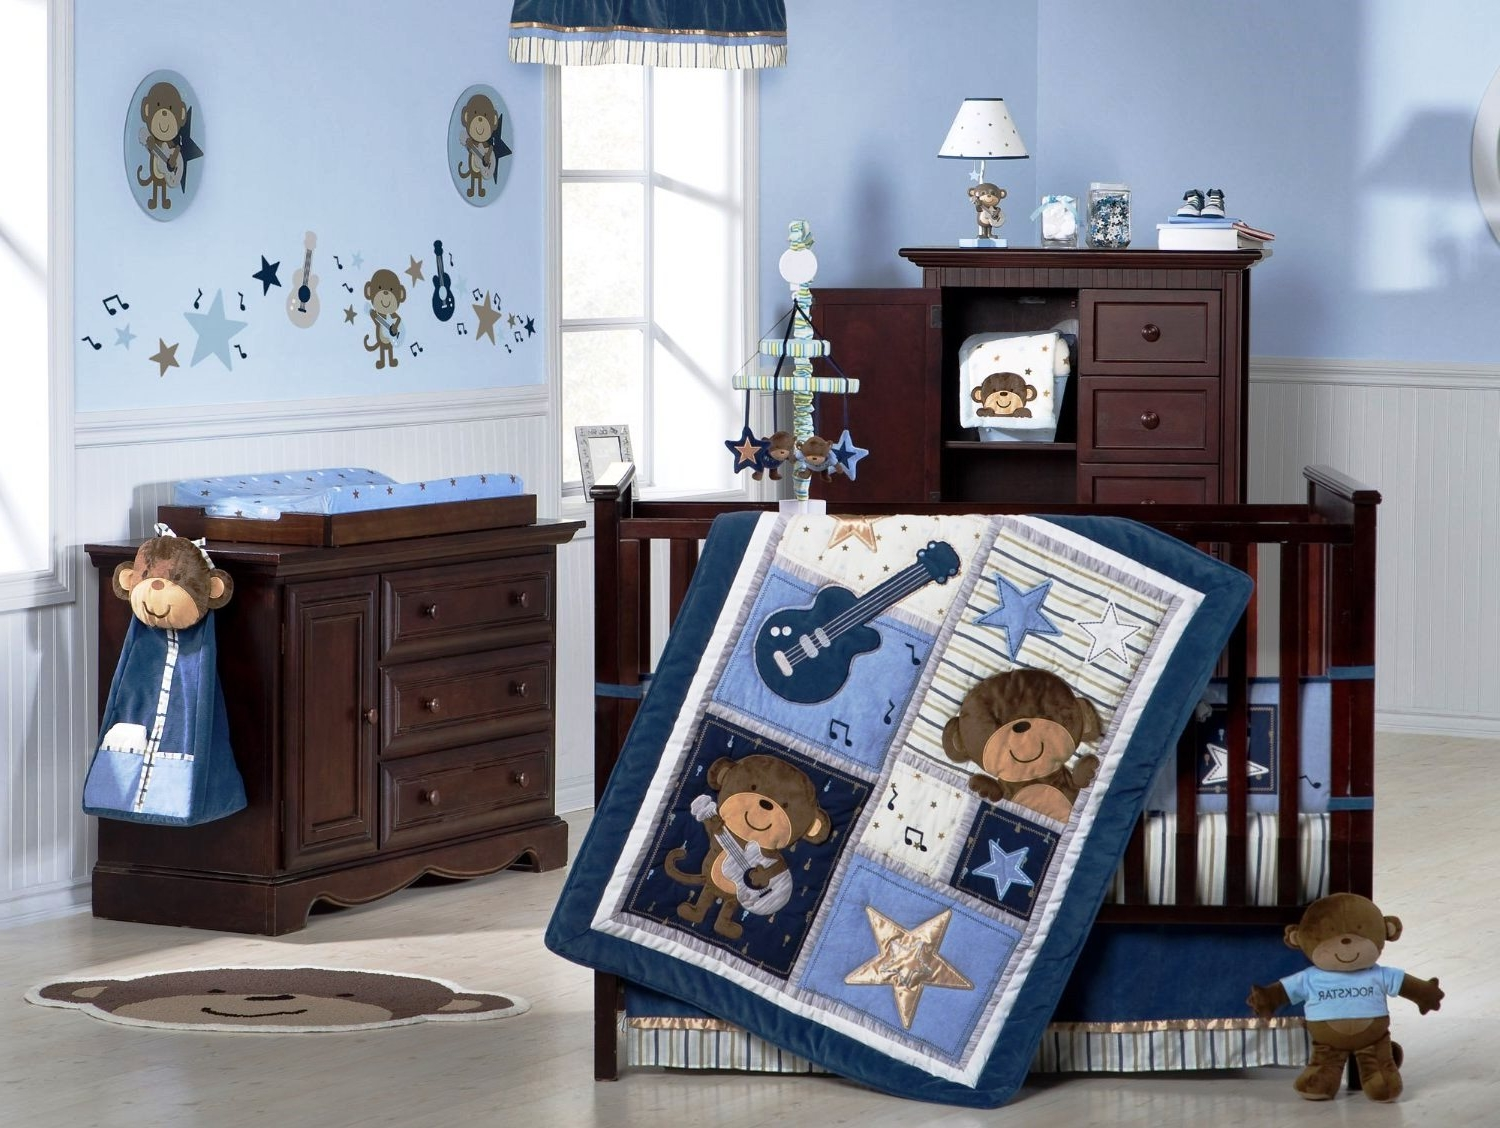 Baby boy nursery theme ideas homesfeed - Room decoration for baby boy ...